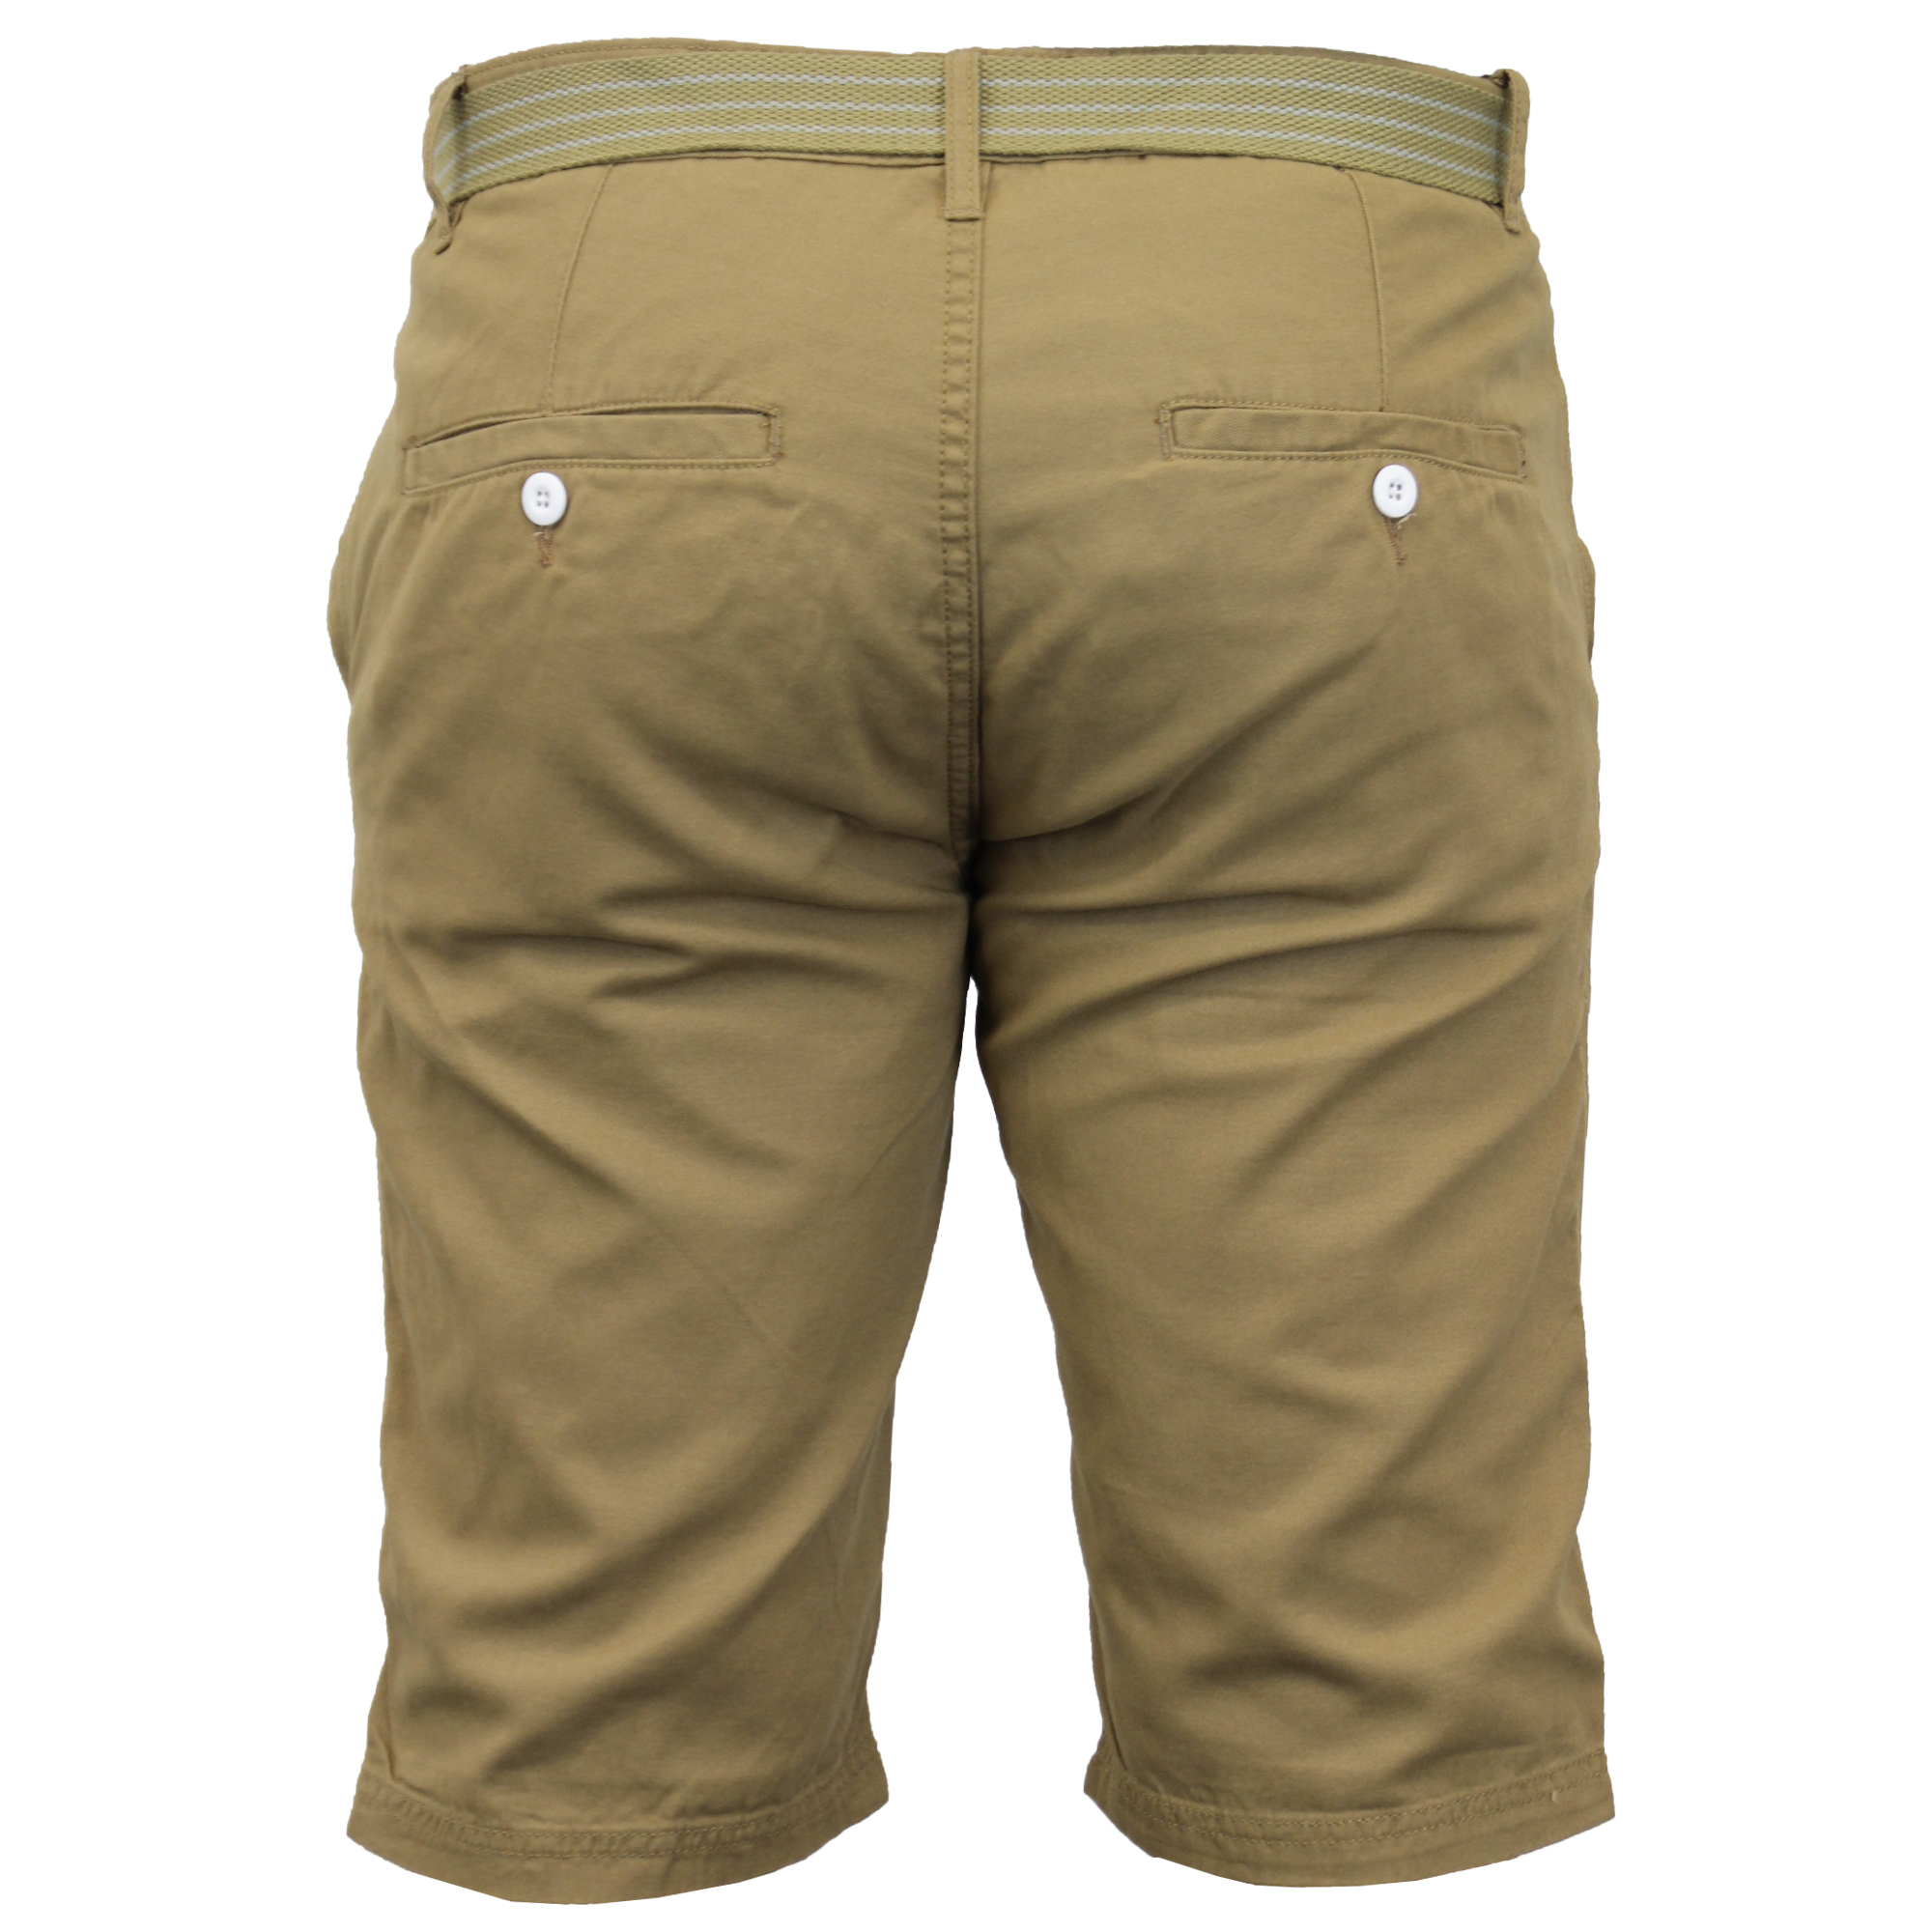 Mens-Chino-Shorts-Threadbare-Cotton-Oxford-Belted-Loyalty-amp-Faith-Seven-Series thumbnail 58